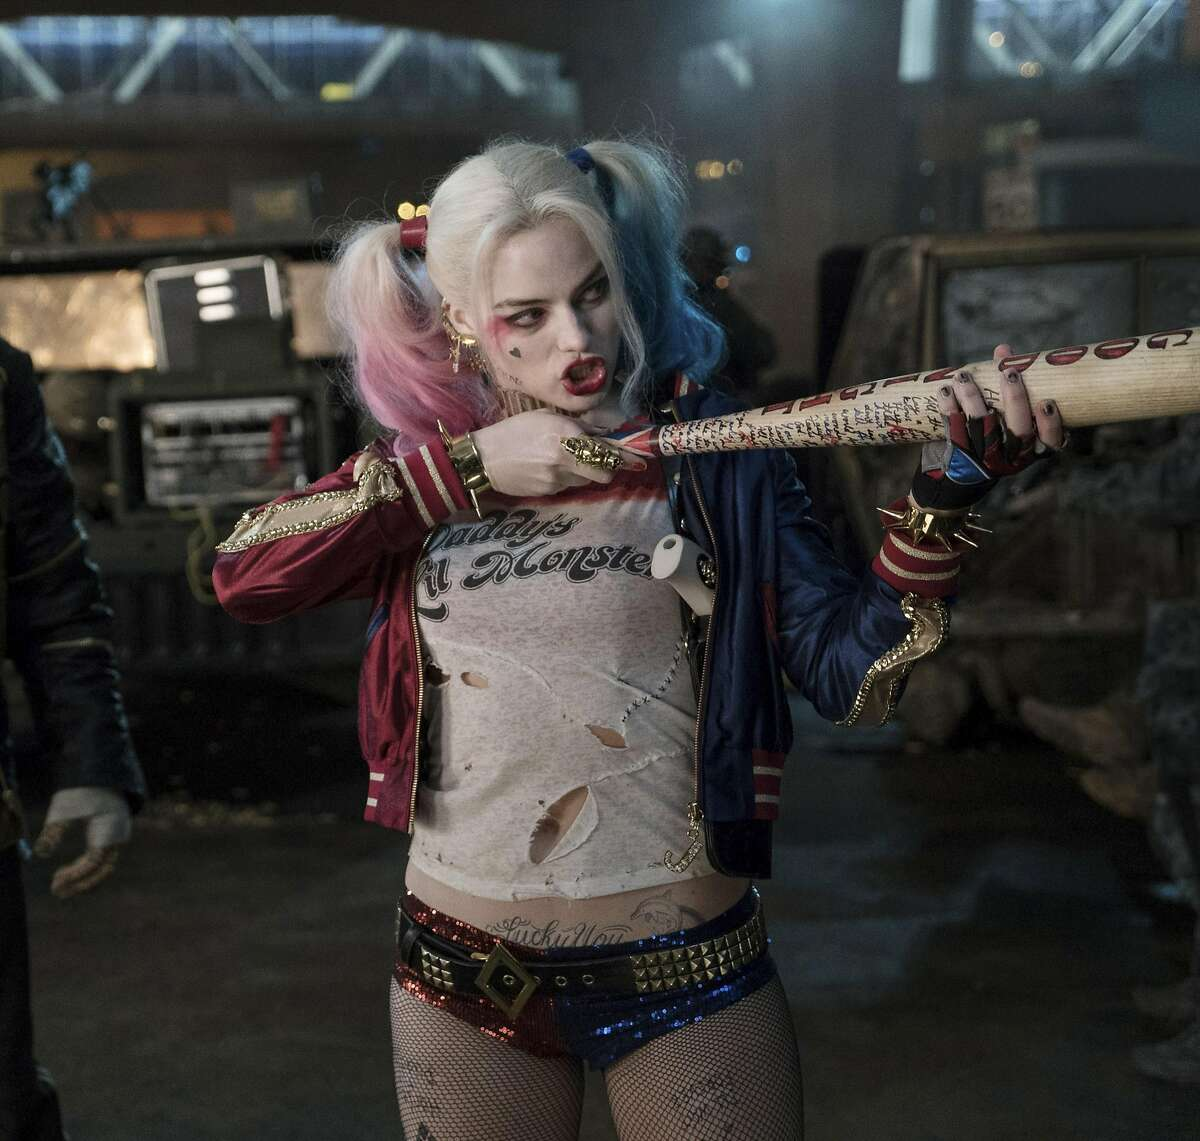 """-- PHOTO MOVED IN ADVANCE AND NOT FOR USE - ONLINE OR IN PRINT - BEFORE AUG. 7, 2016. -- In an undated handout photo, Margot Robbie as Harley Quinn in the film """"Suicide Squad."""" This year, the Harley Quinn character headlines three books, including a self-titled monthly comic, two six-issue mini-series and the new Warner Bros. film """"Suicide Squad."""" (Clay Enos/Warner Bros. and DC Comics via The New York Times) -- NO SALES; FOR EDITORIAL USE ONLY WITH HARLEY QUINN ADV07 BY ROBERT ITO FOR AUG. 7, 2016. ALL OTHER USE PROHIBITED."""